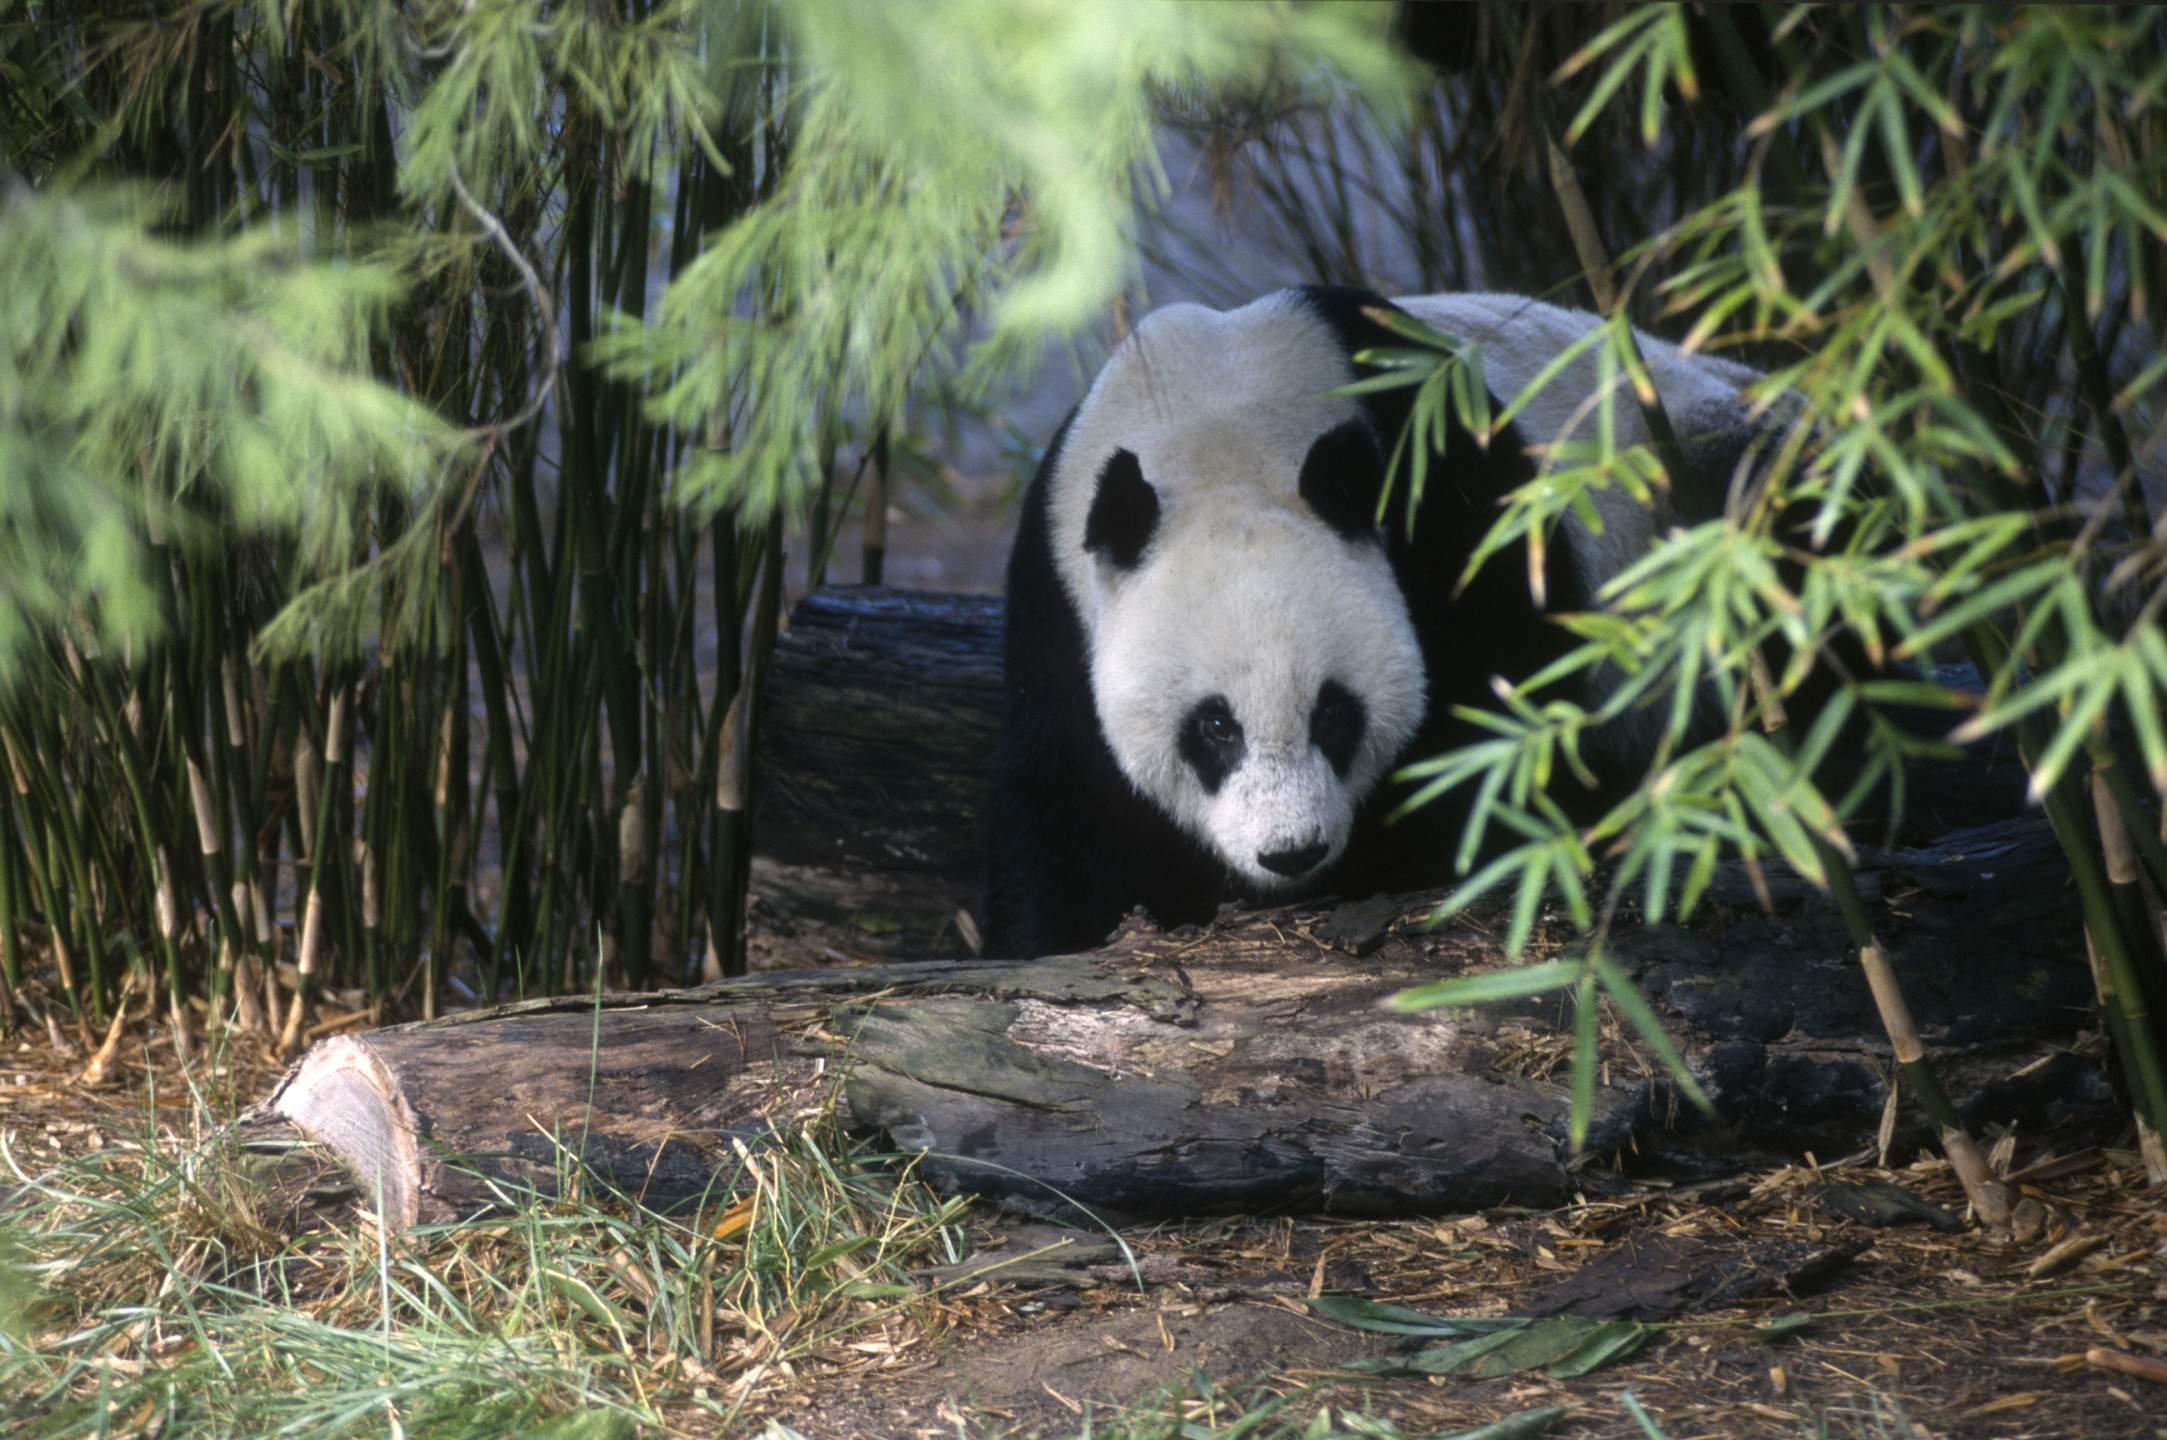 When keeper John Michel met Shi Shi at the Shanghai Zoo, he noted the male bear's more reserved personality.